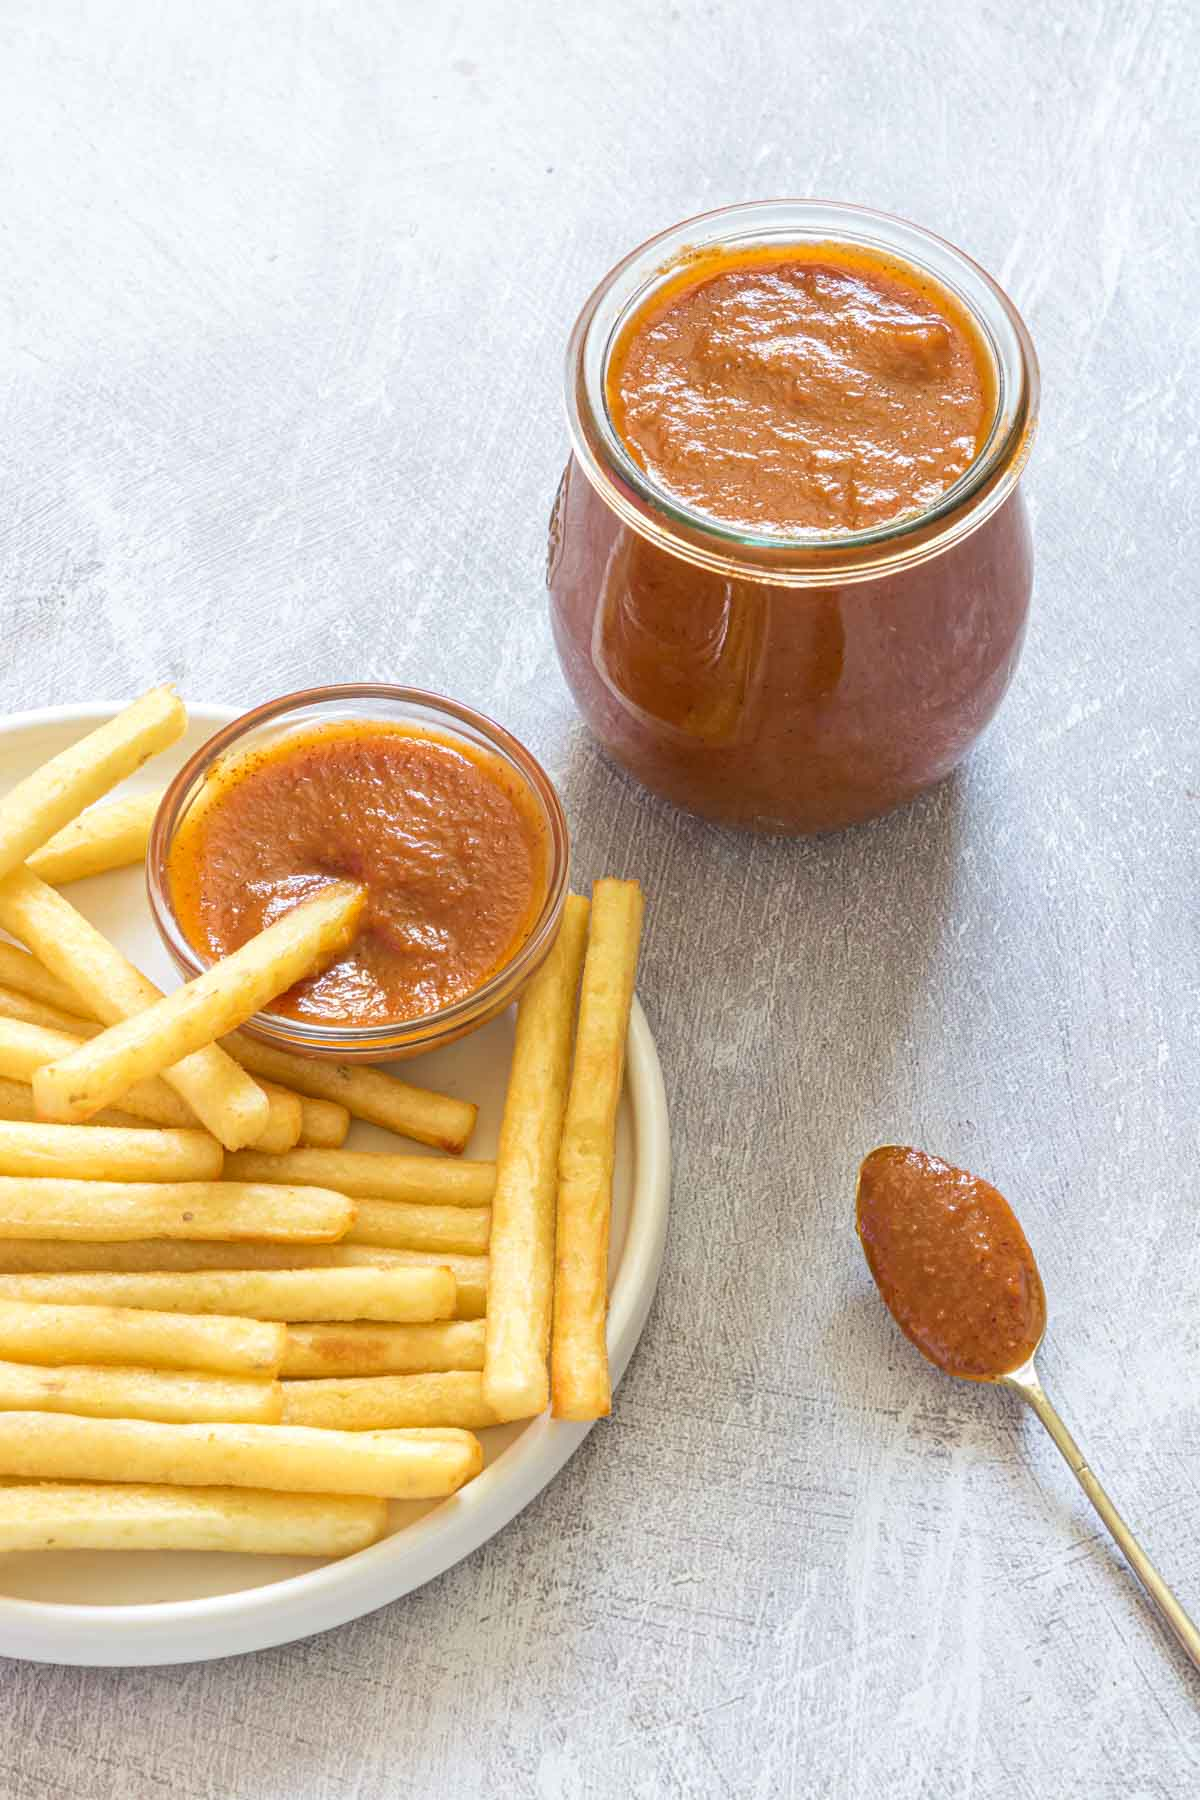 some homemade tomato ketchup served with some fries on a plate, with a spoon of ketchup on the side